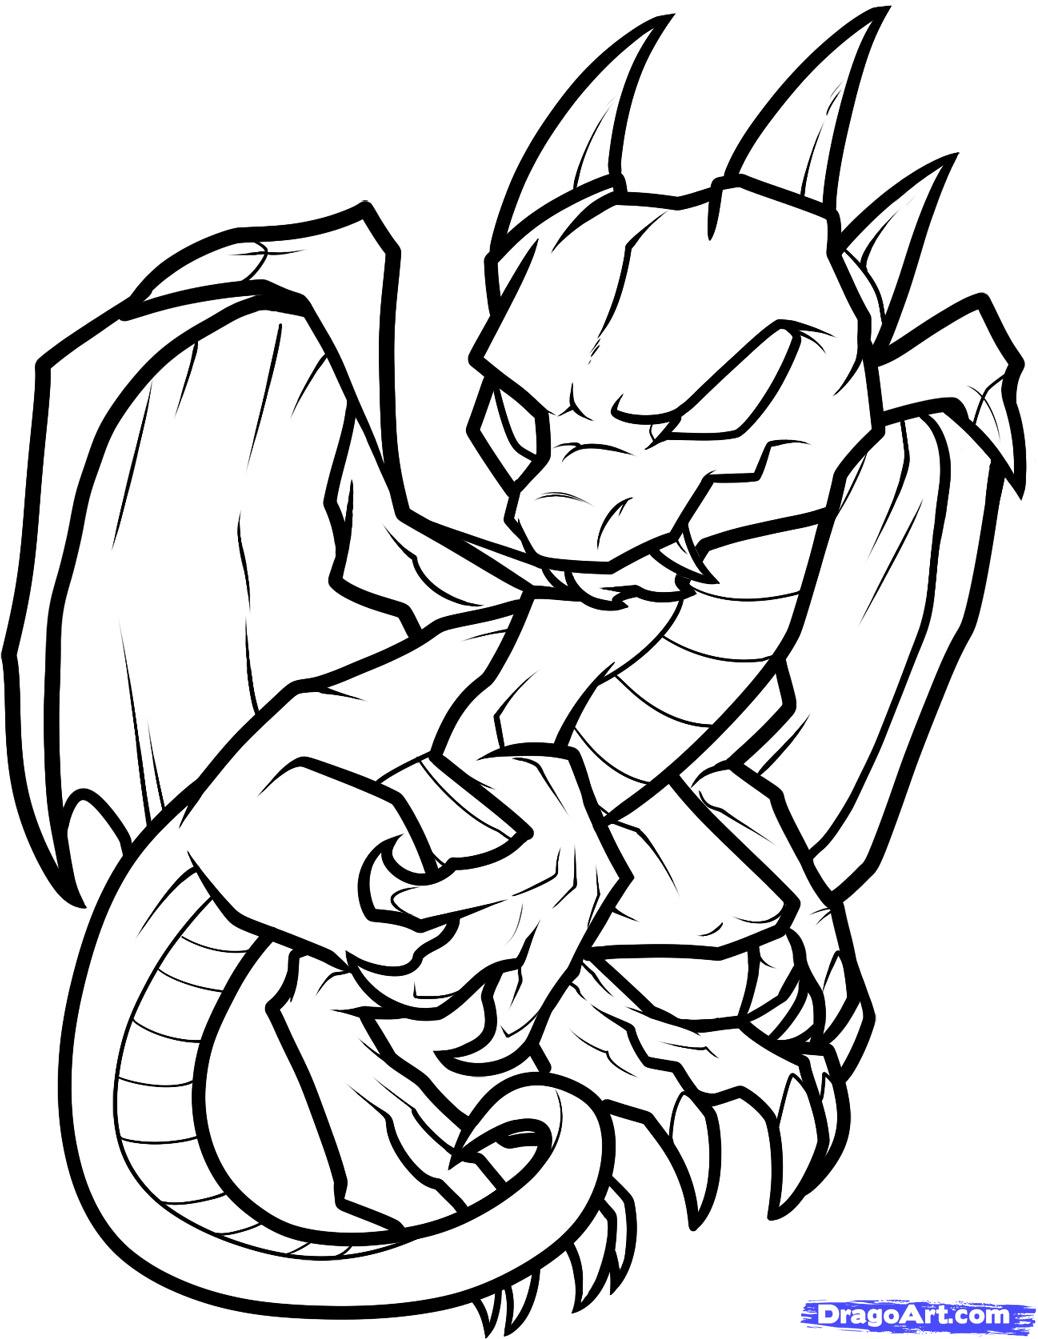 Flying baby dragon outline clipart black and white. Drawings free download best